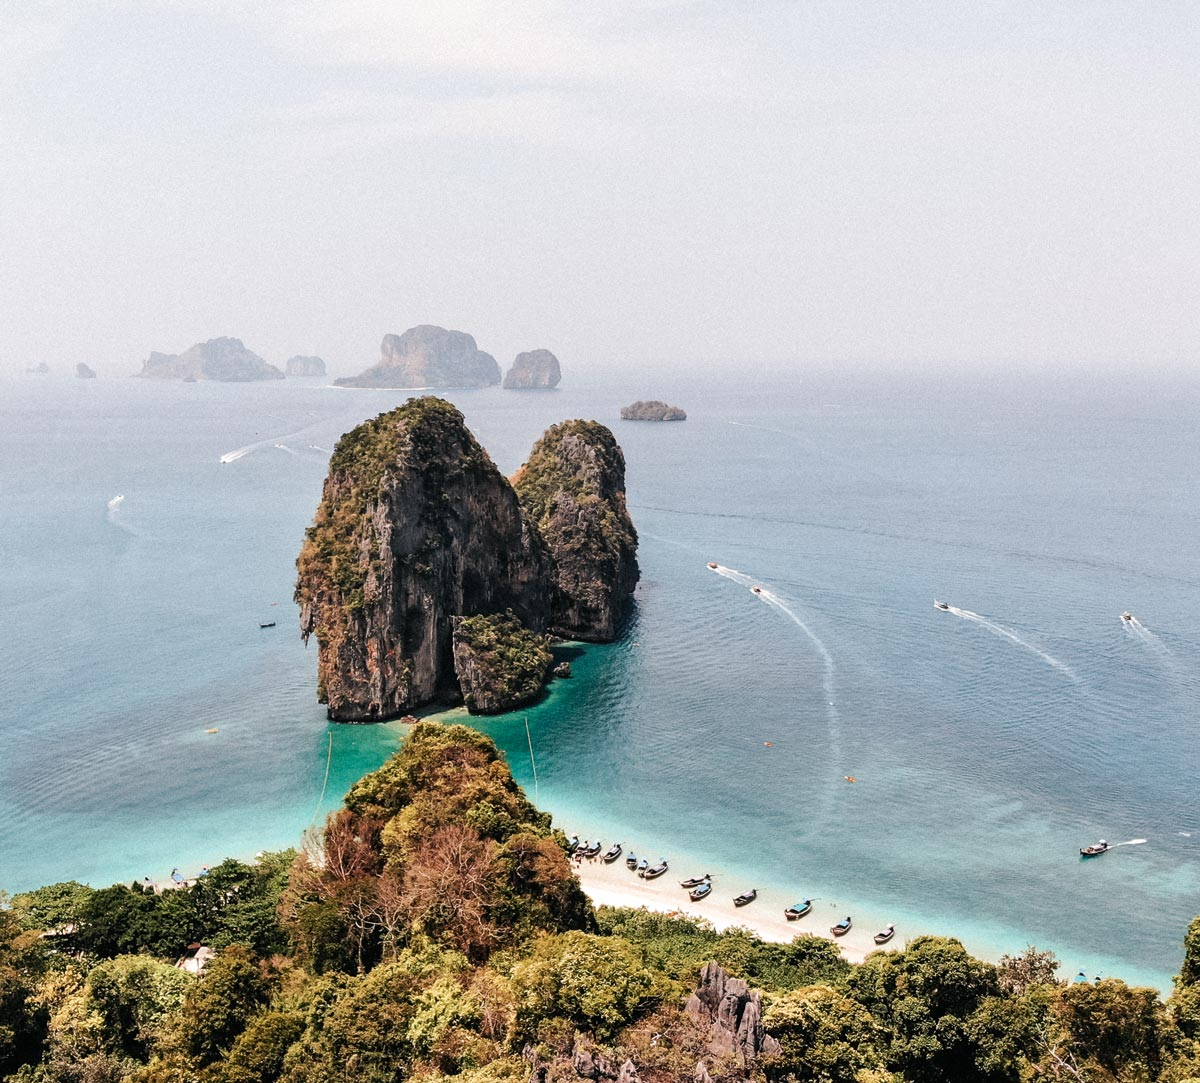 drone-photo-railay-beach-thailand